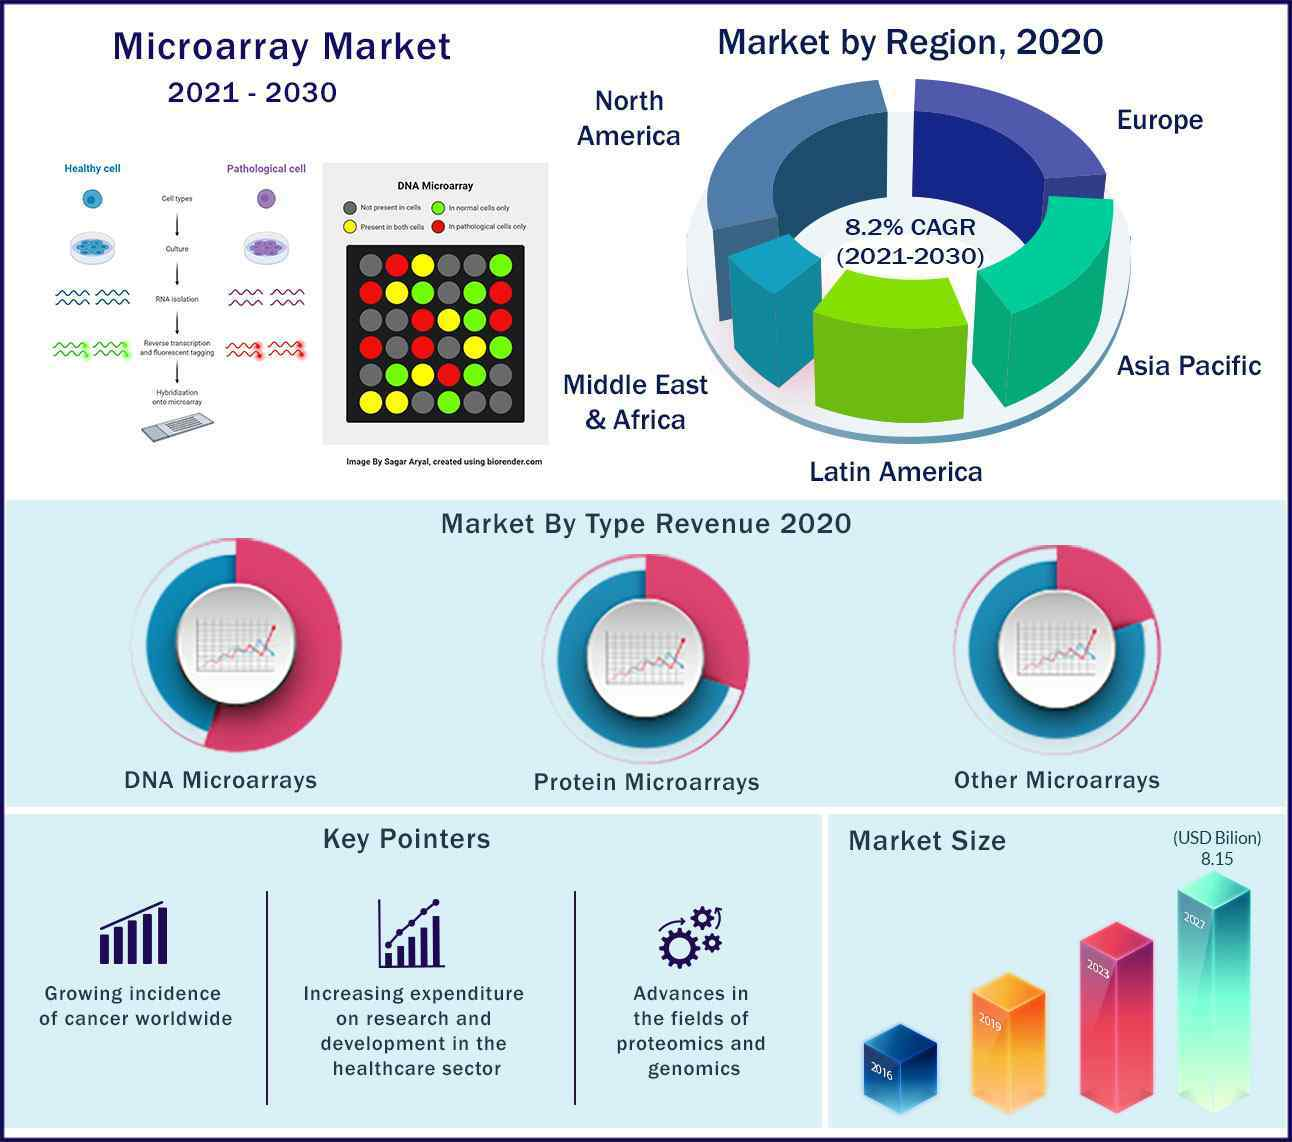 Global Microarray Market 2021 to 2030